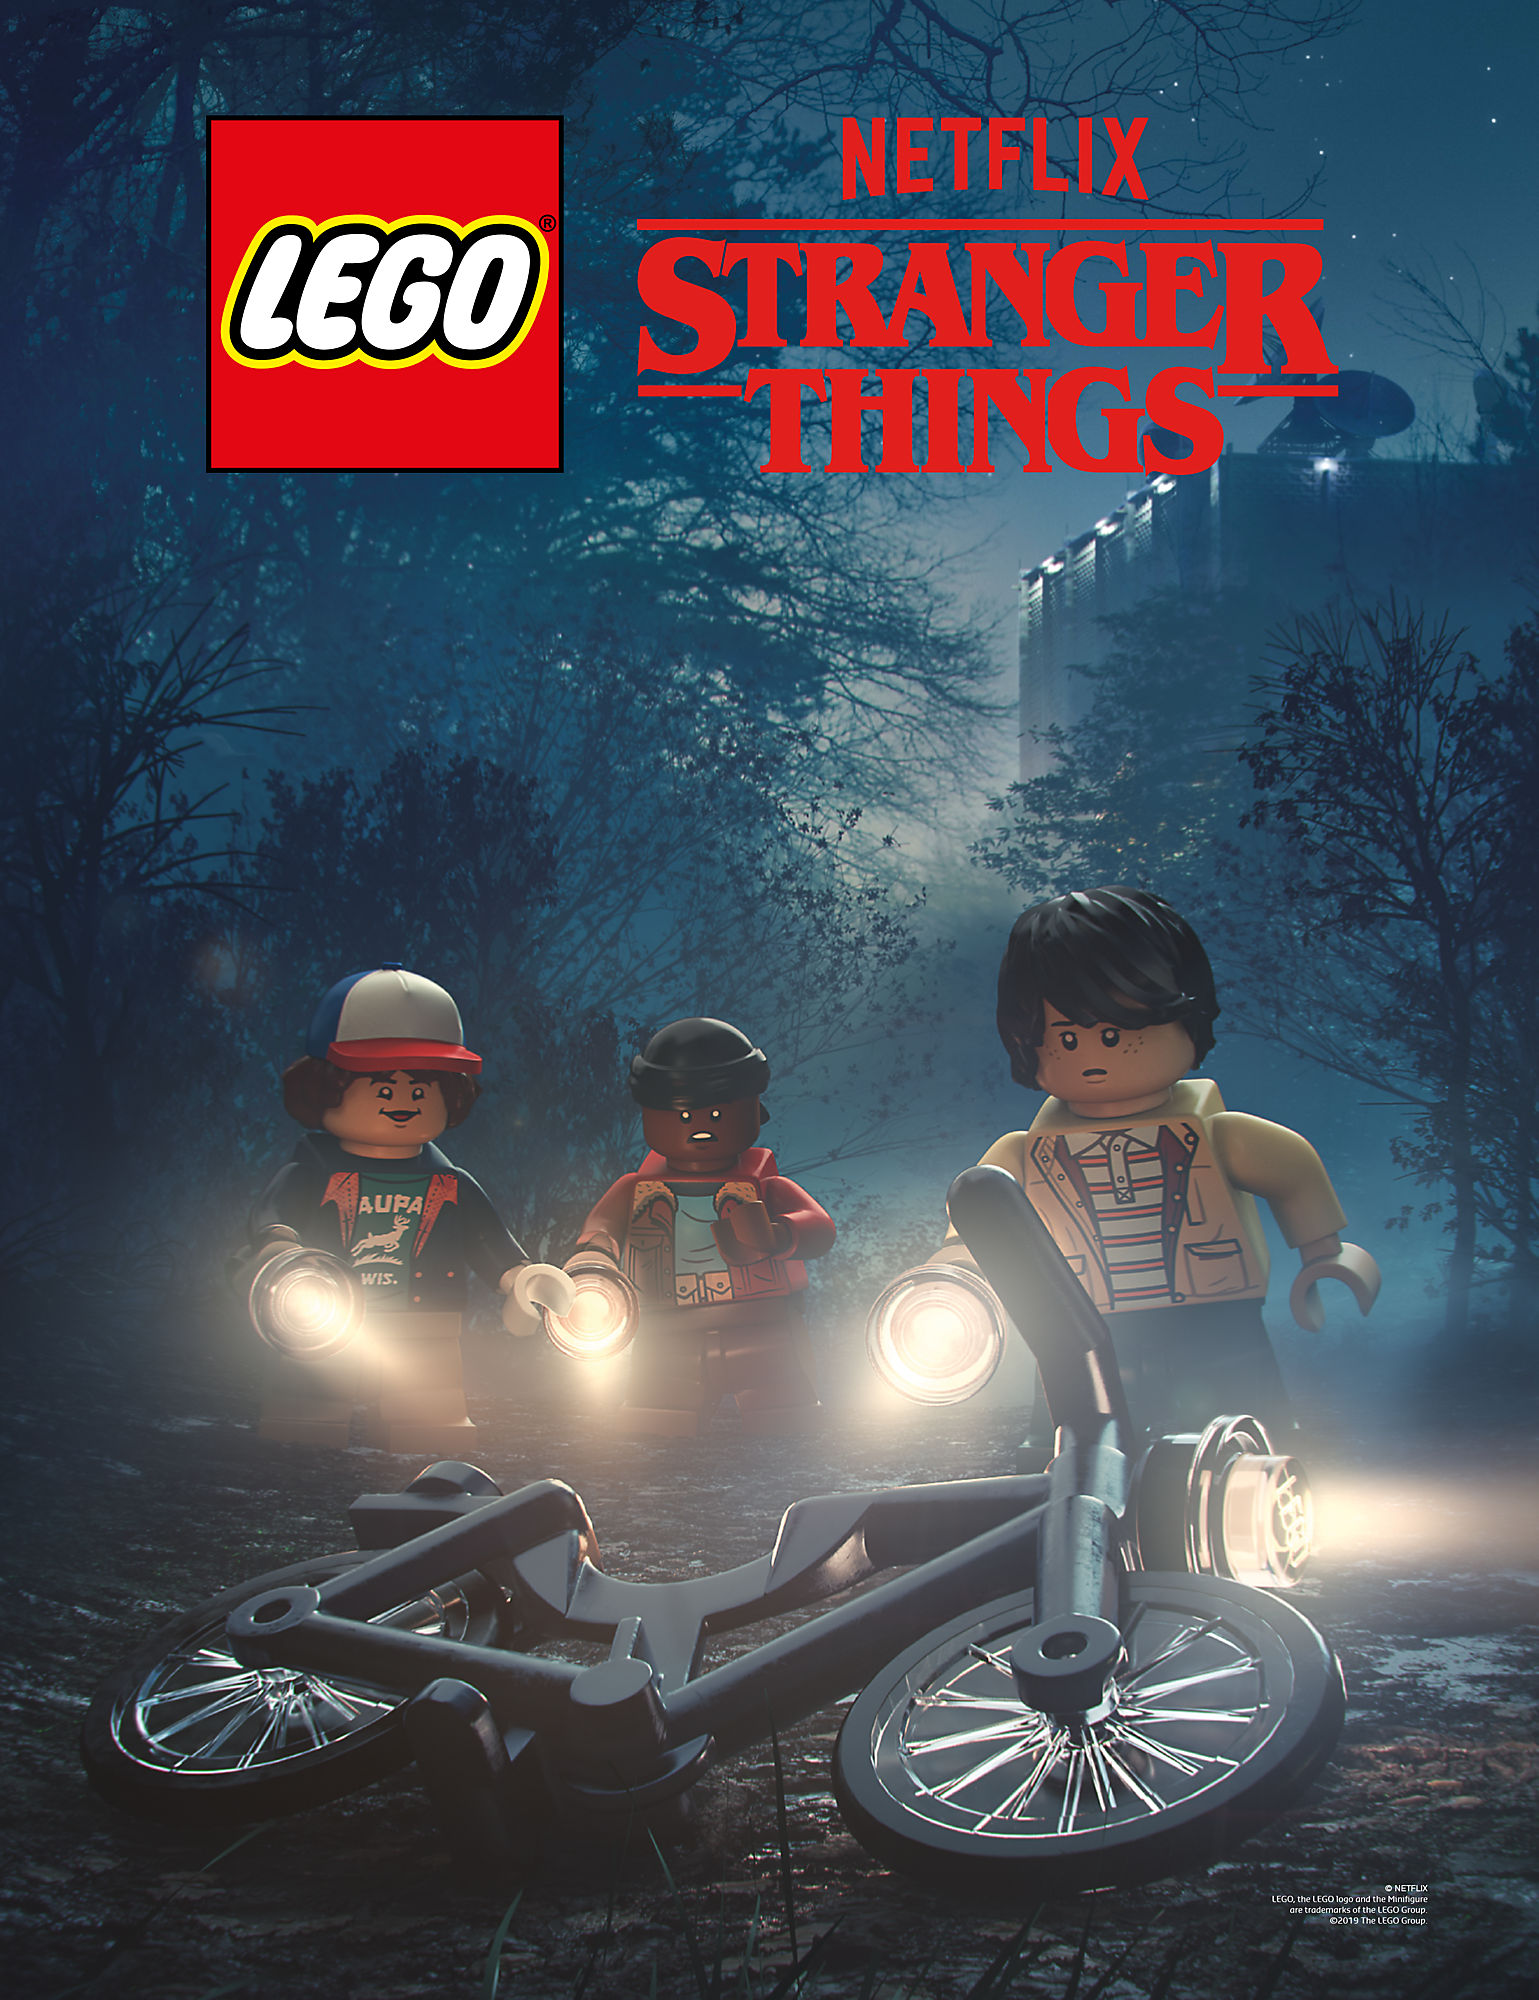 LEGO Stranger Things Poster (5005956) Promotion on Shop@Home - The Brick Fan